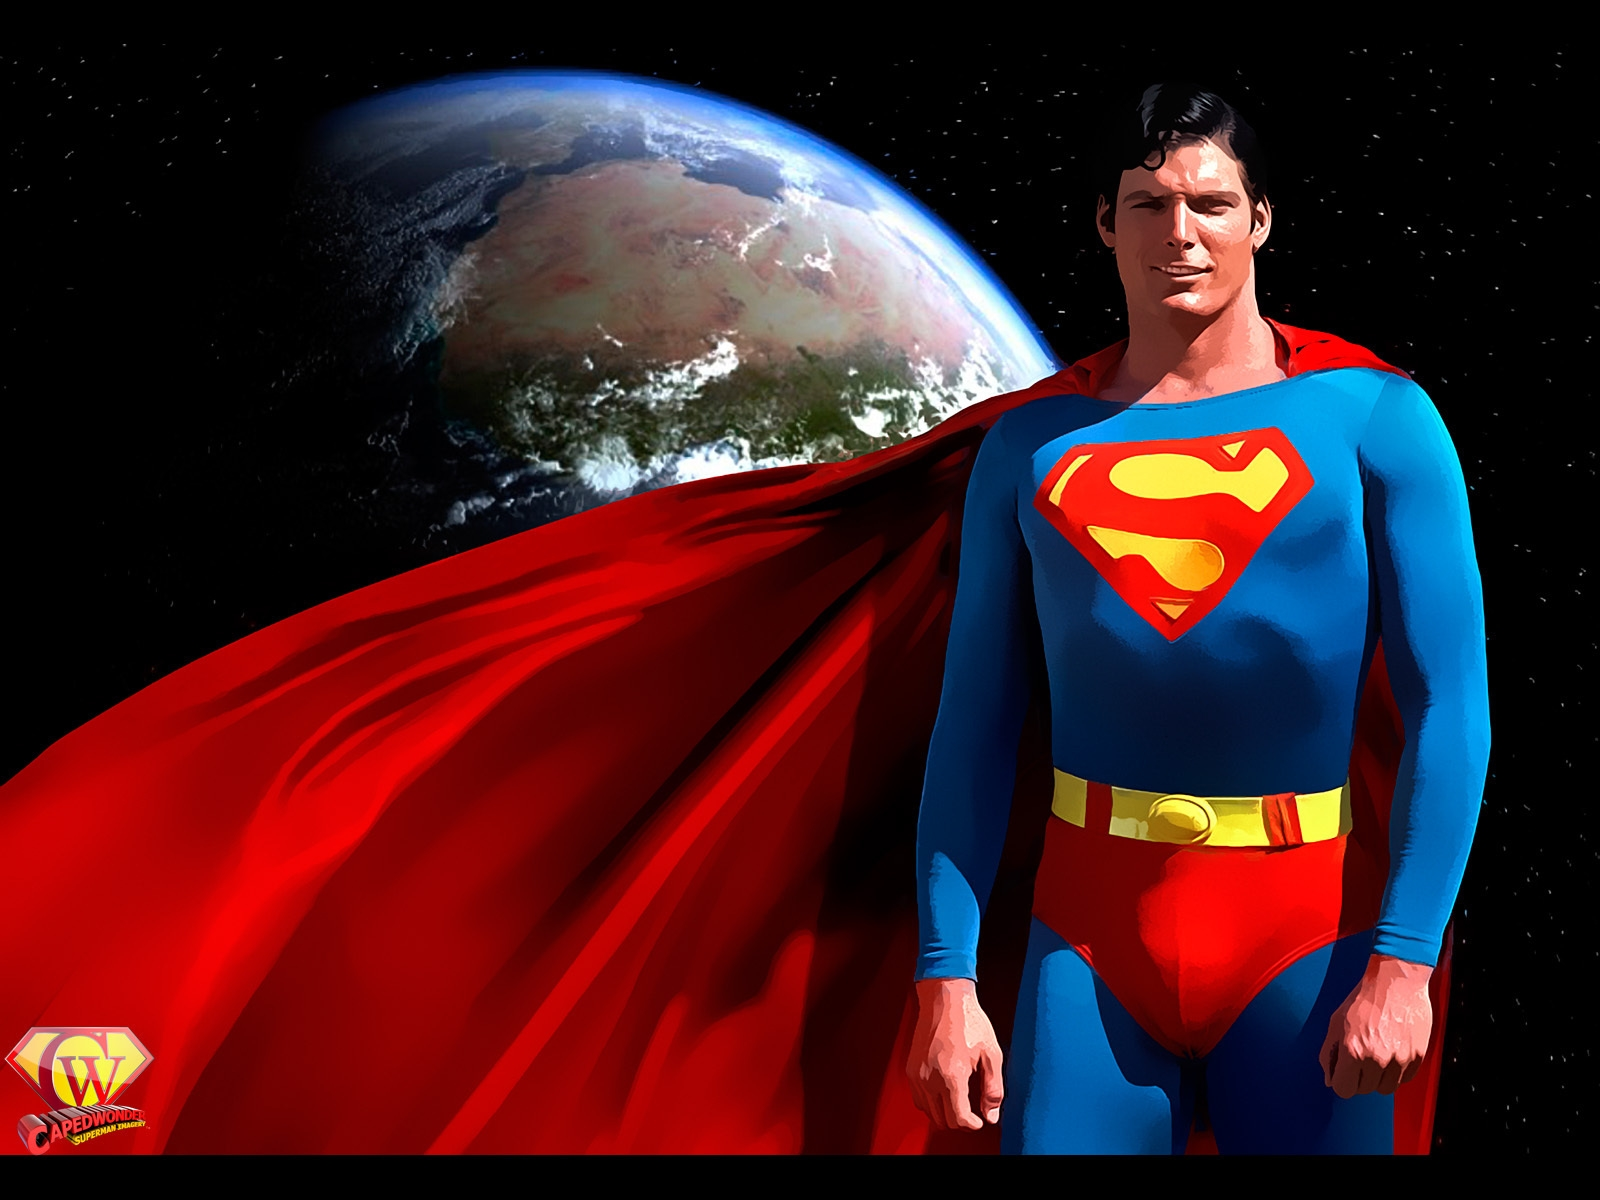 Black Superman World Wallpaper Free Download